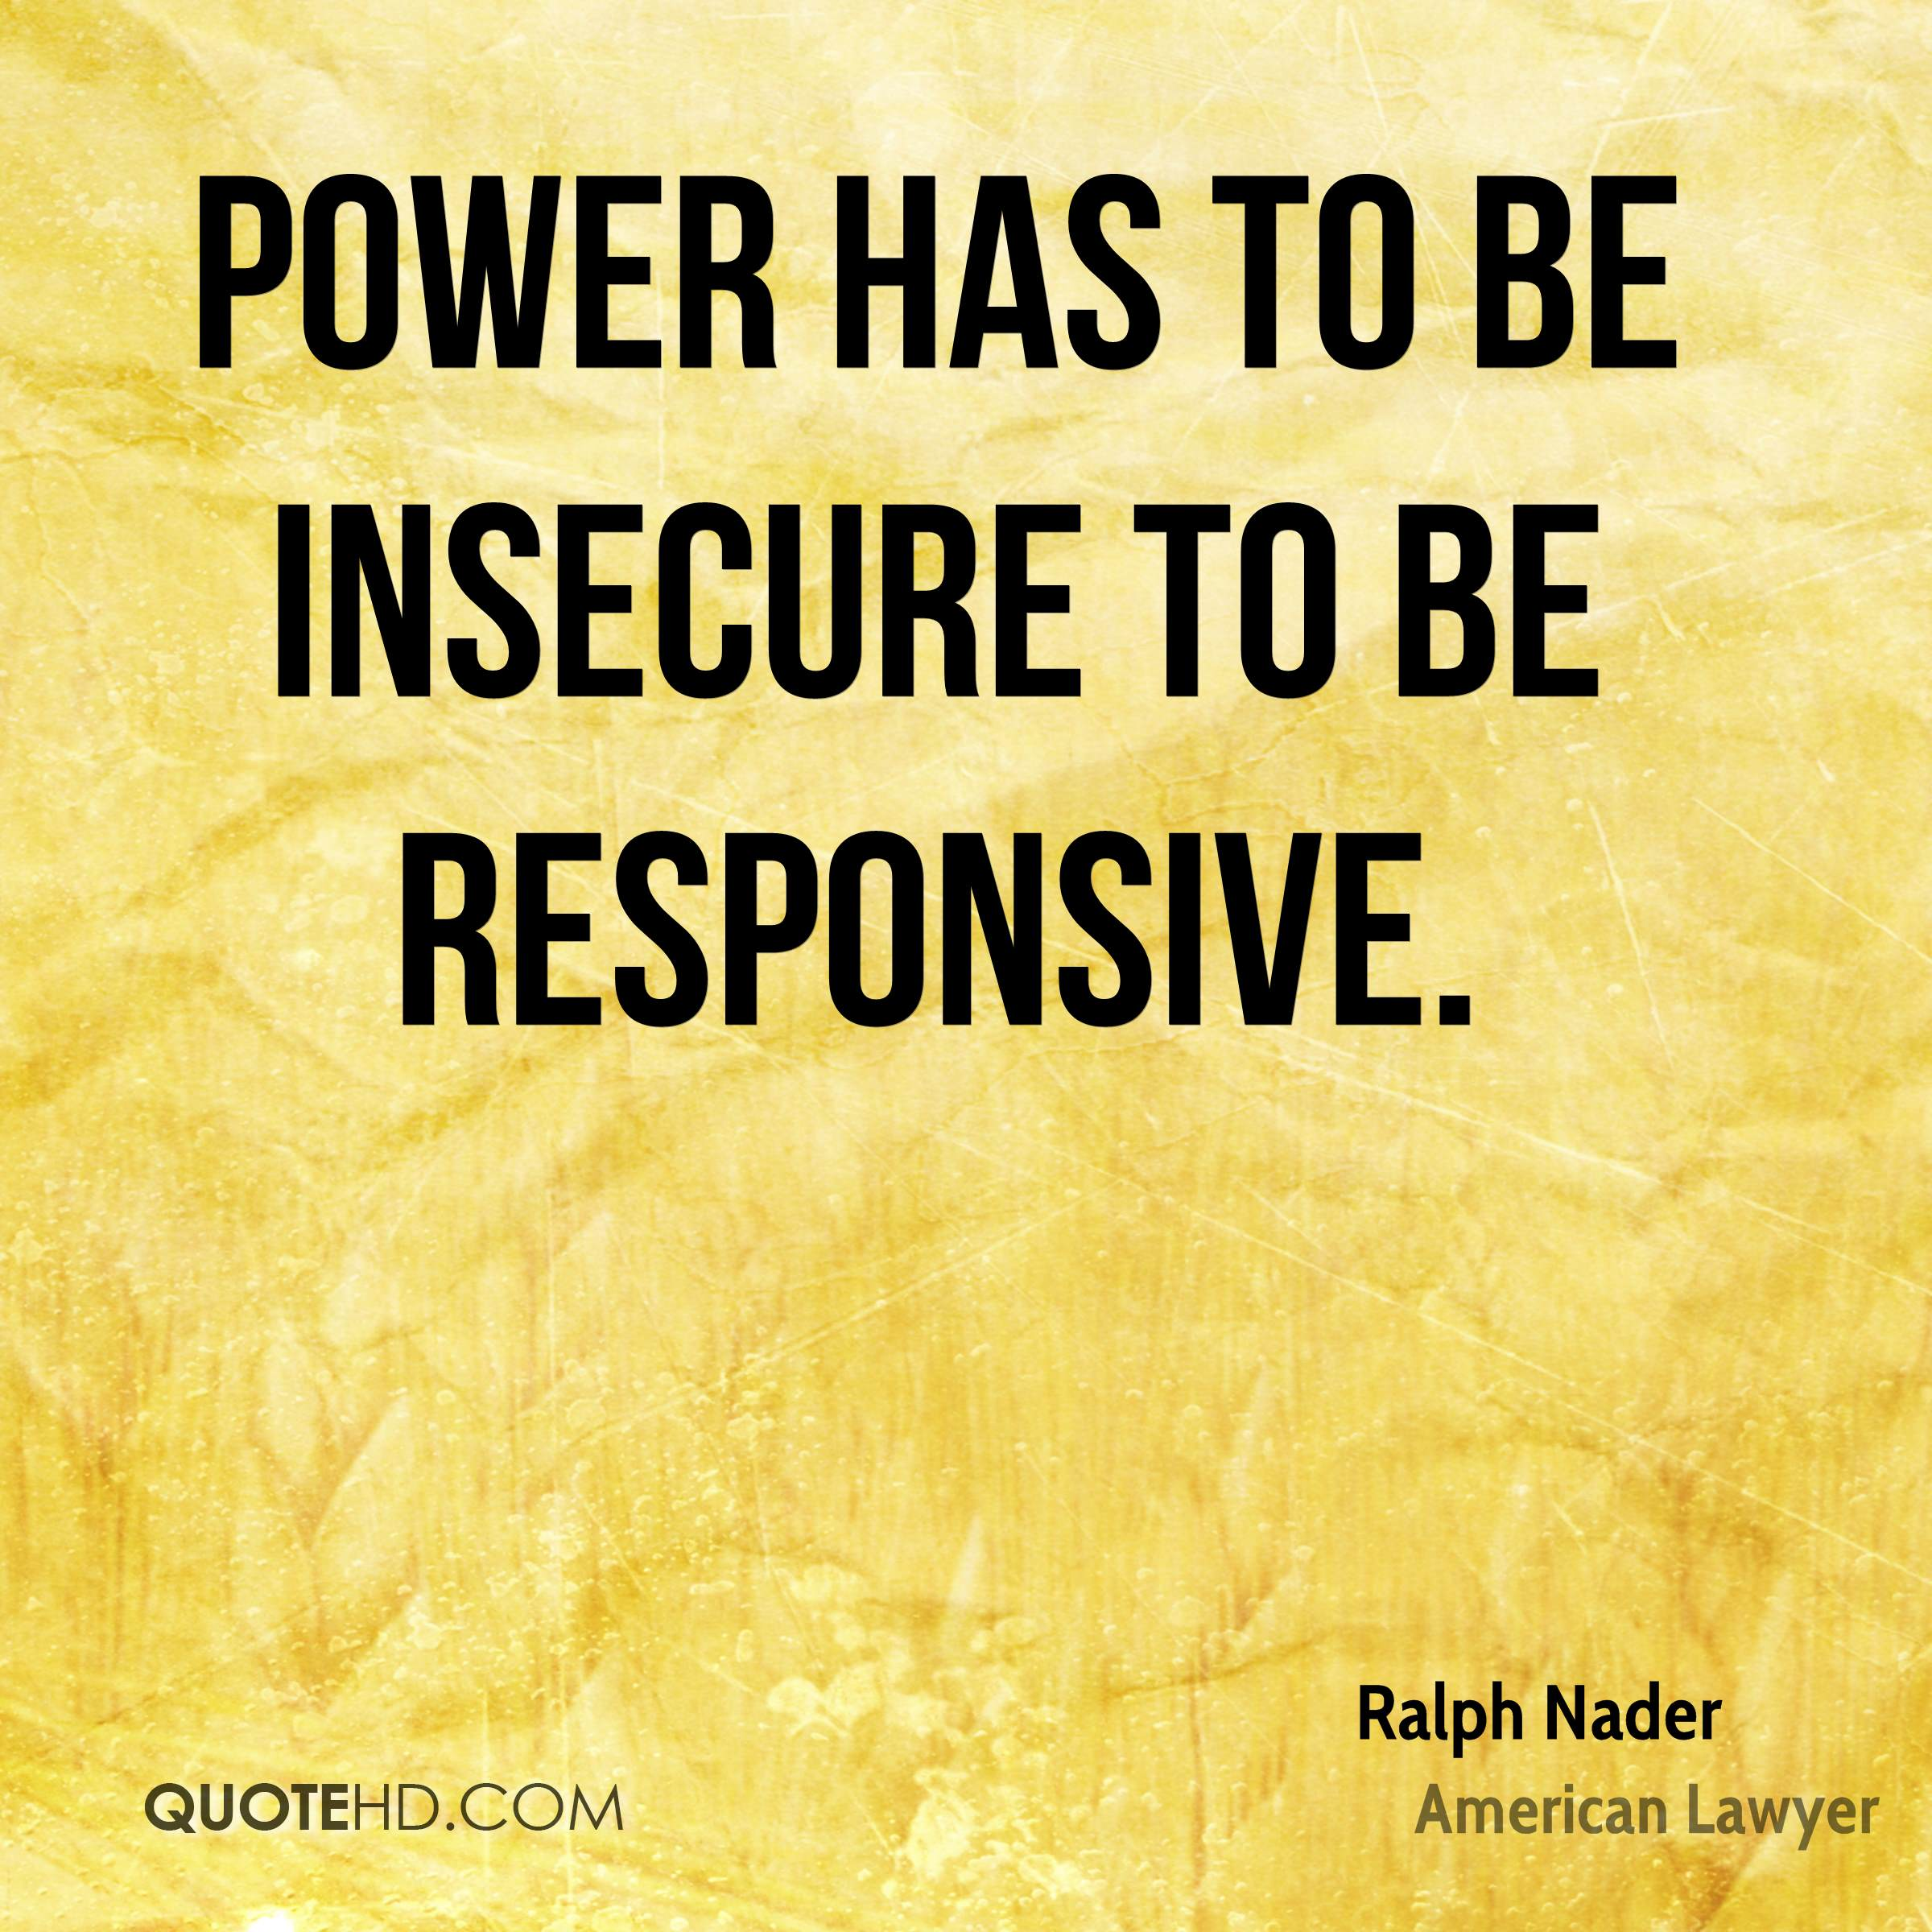 Power has to be insecure to be responsive.